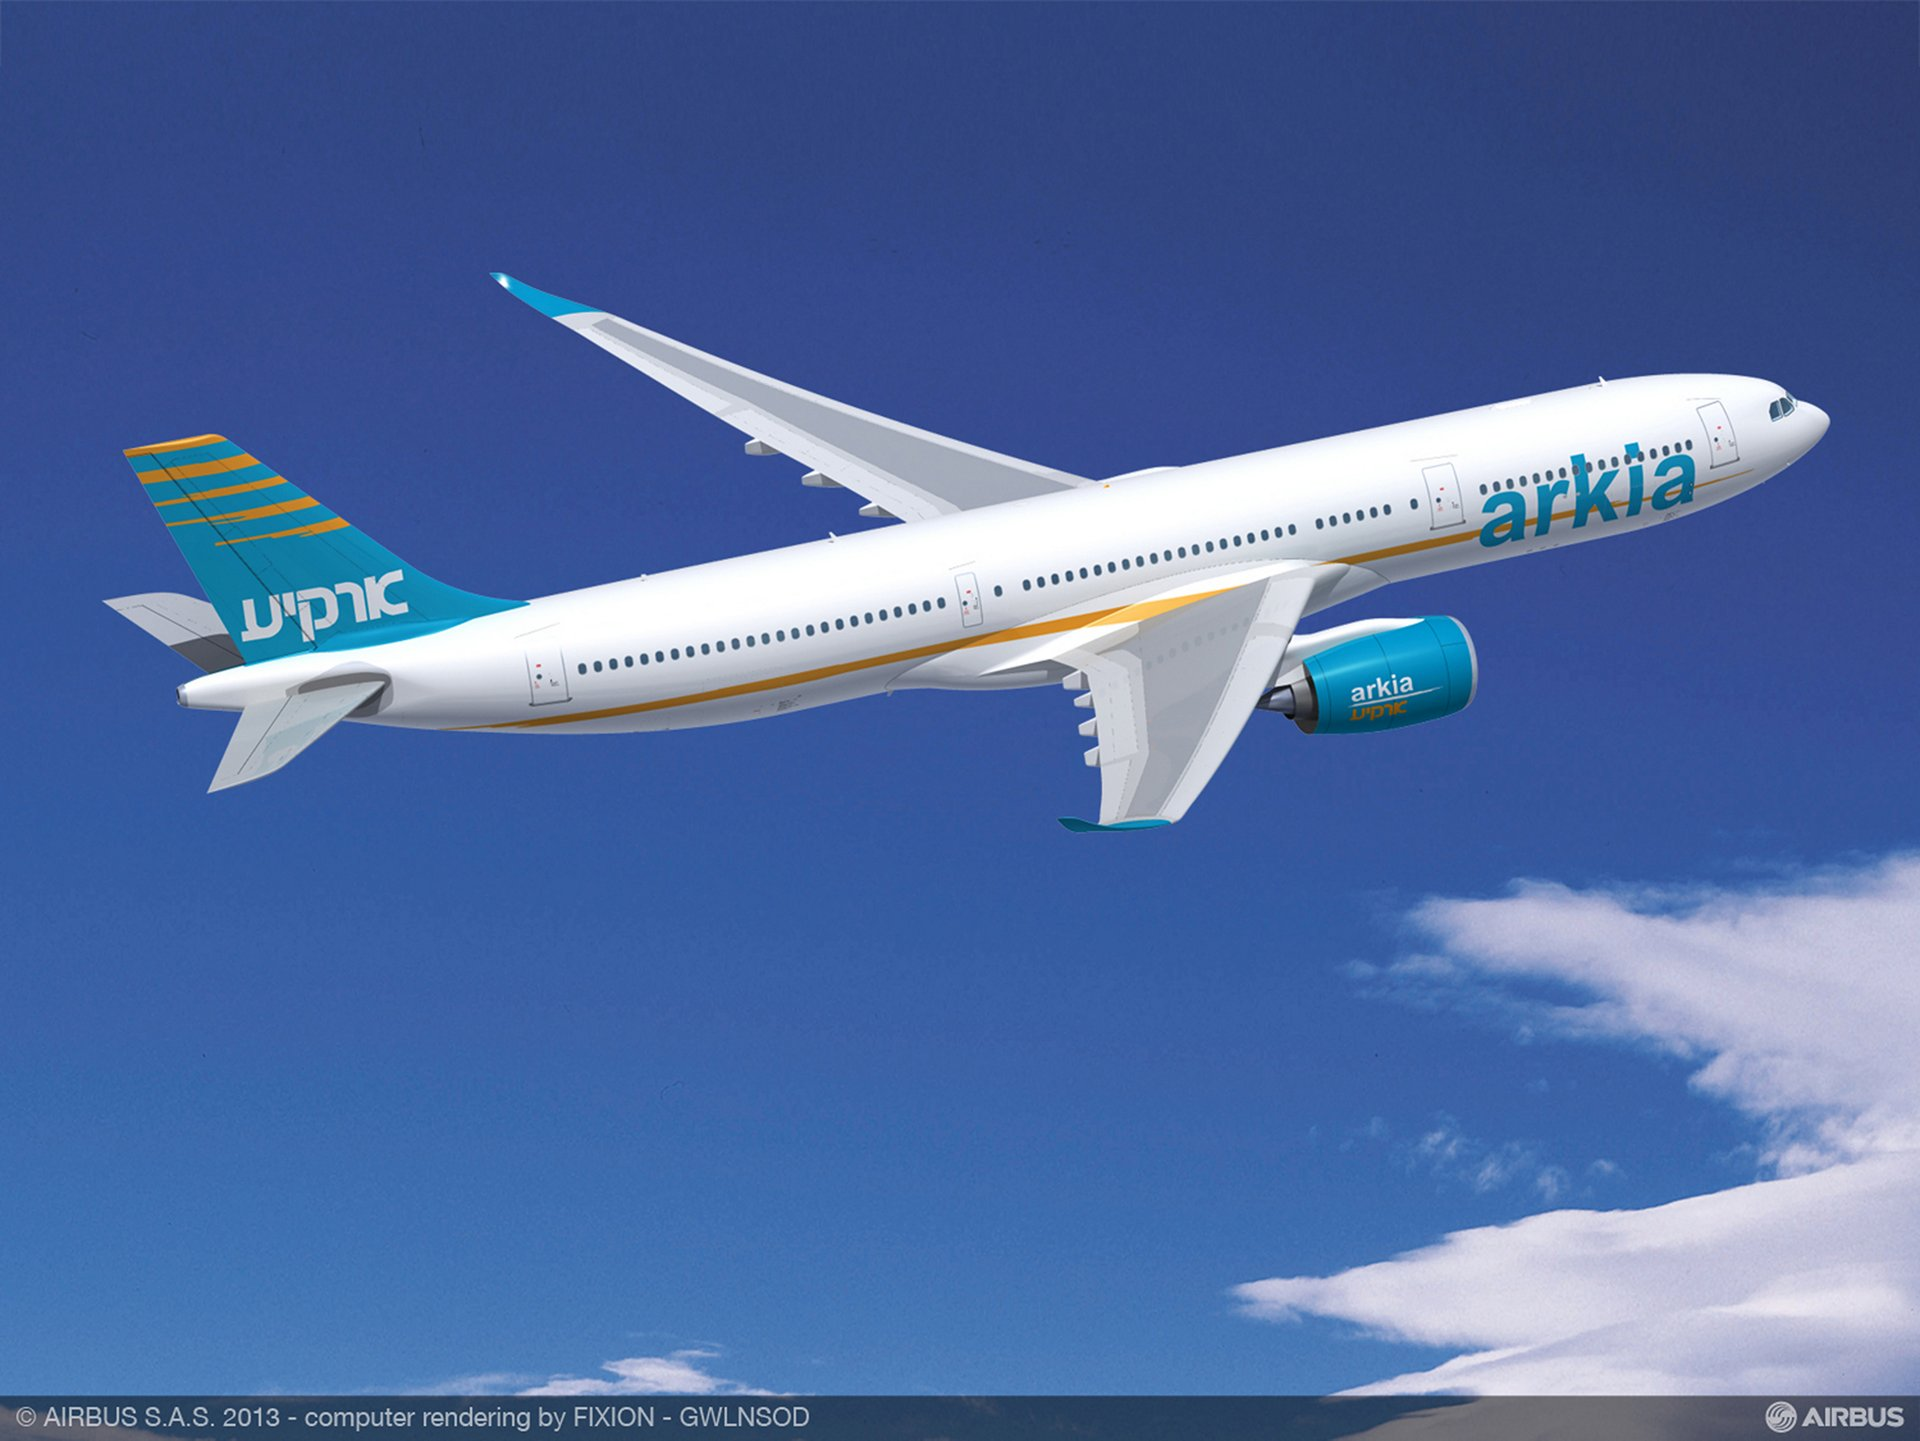 "Joe Nakash, Chairman of Jordache Enterprises (majority owner of ARKIA Israeli Airlines): ""The A330-900neo will be a key asset to help us grow efficiently on highly-competitive international long-haul routes from Israel"""